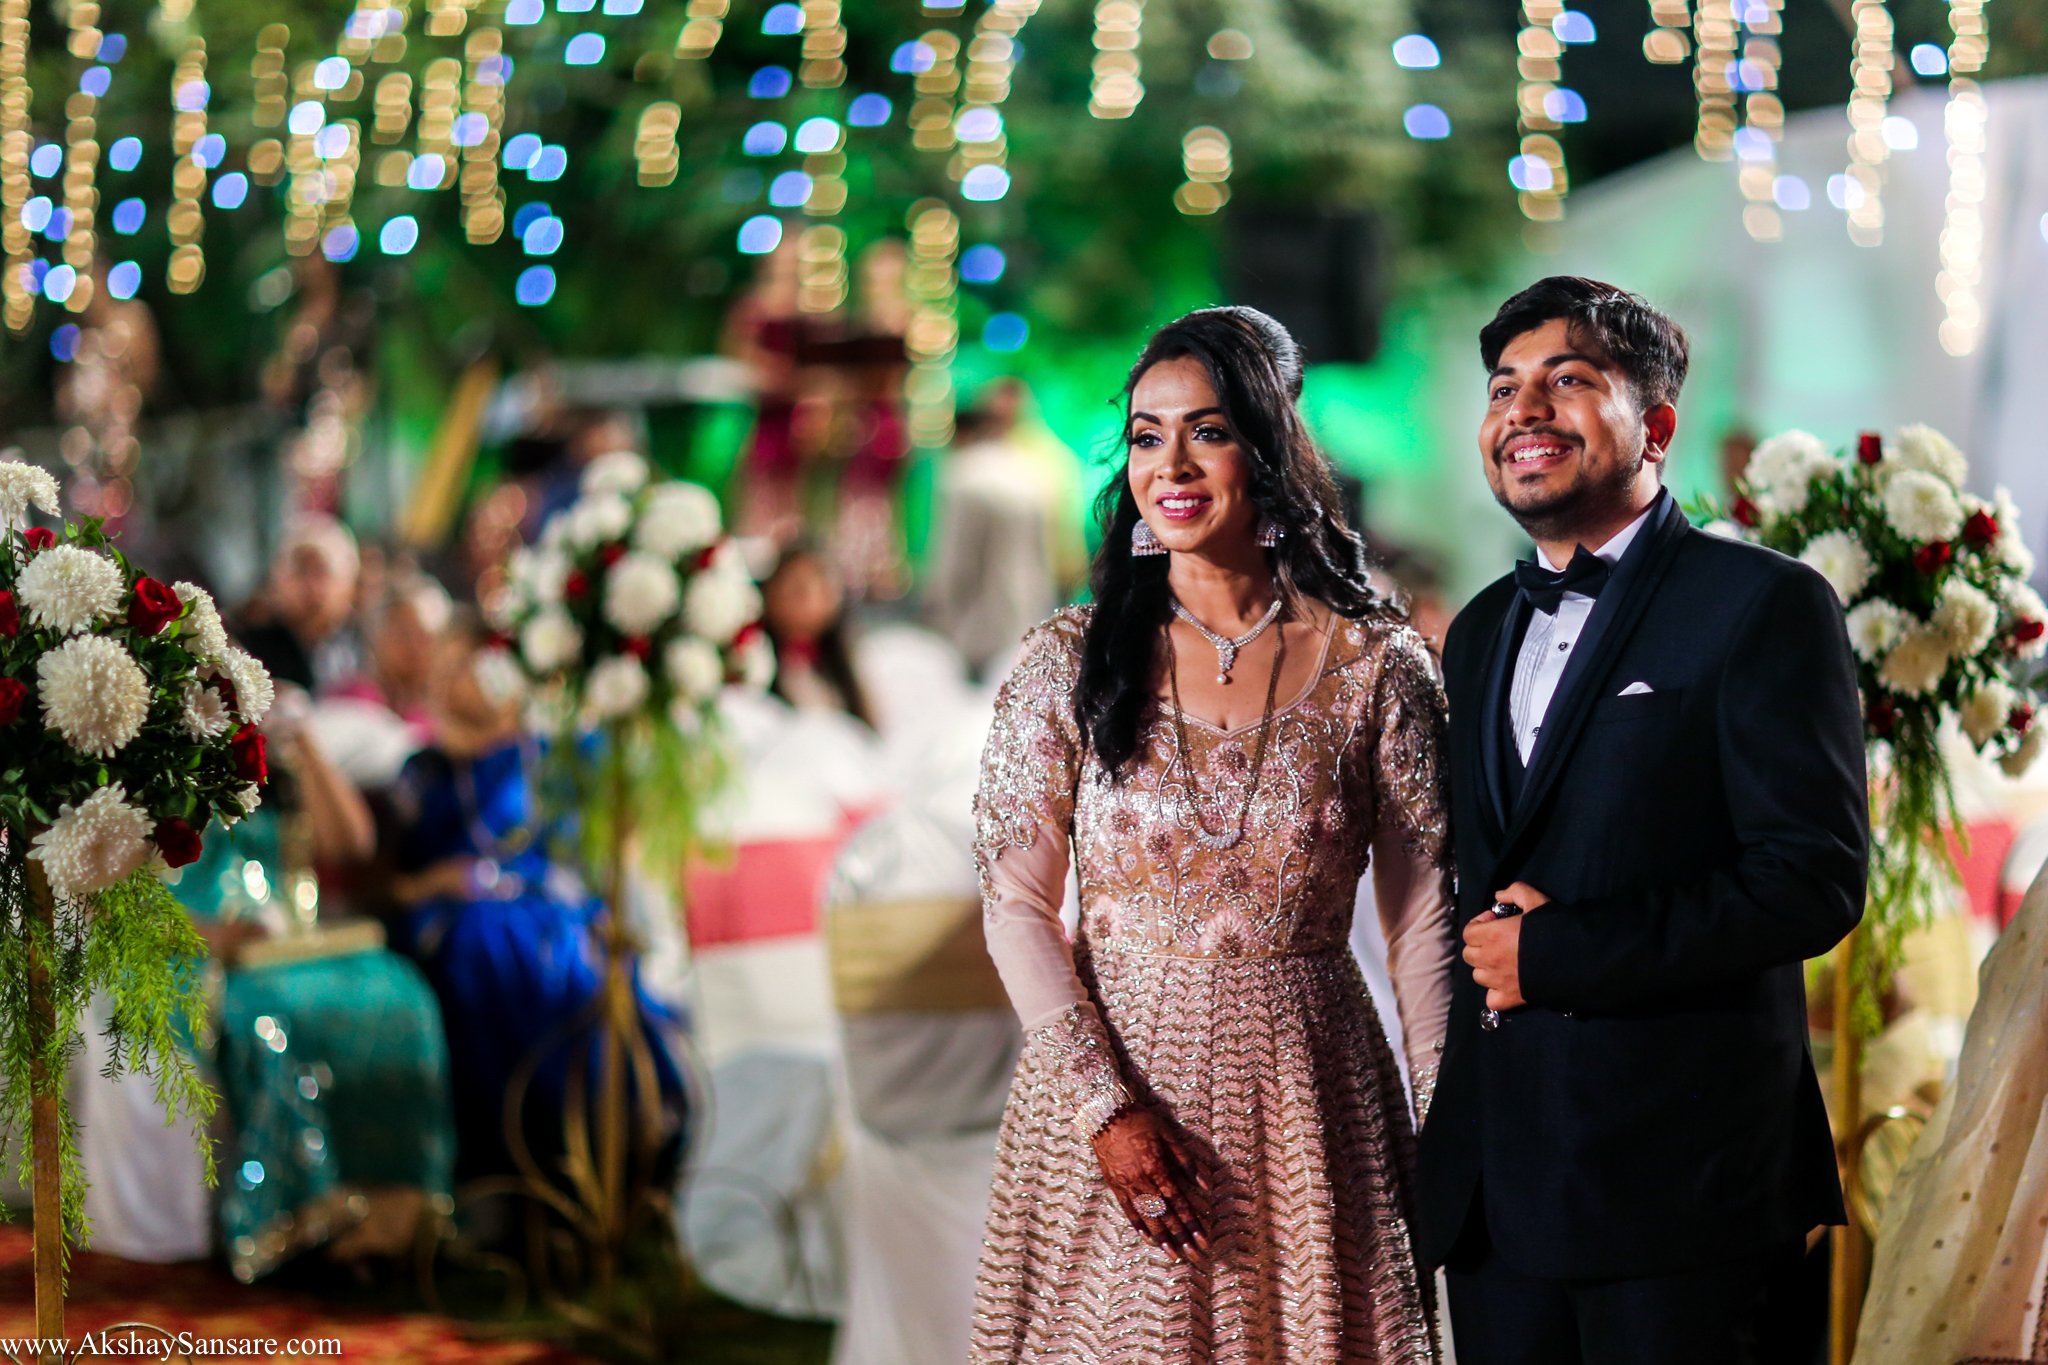 Nupur & Rohan wedding Akshay Sansare Photography best wedding photographer in mumbai India Candid(60).jpg